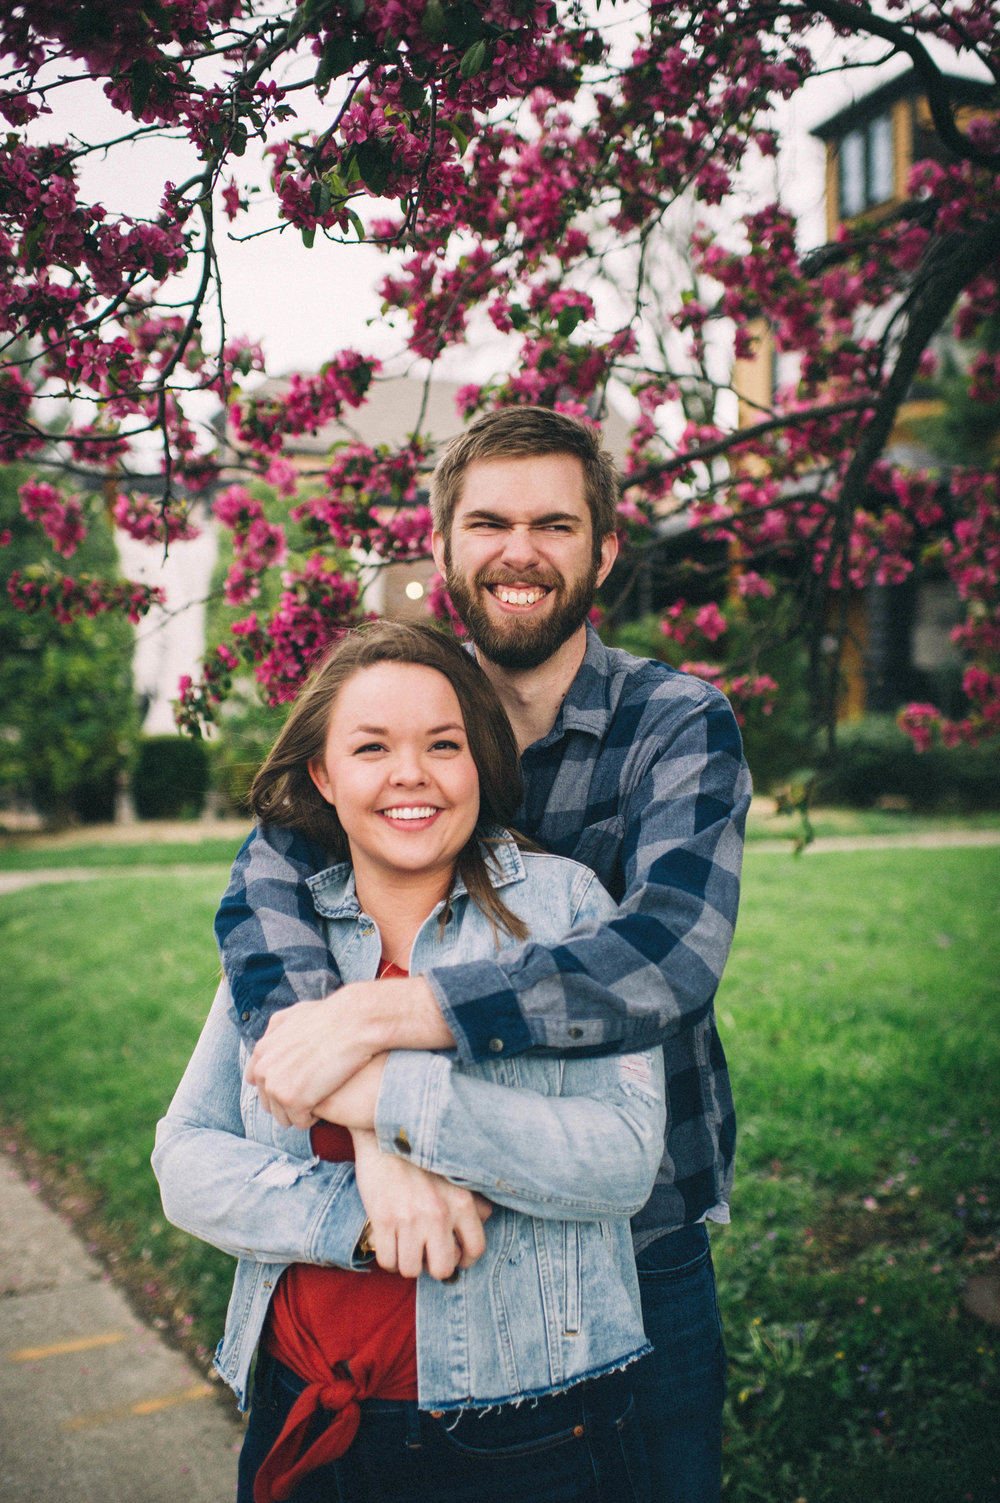 Maggie + Corey Engagement Session- Sarah Katherine Davis Photography - Highlands Bardstown Road - Louisville Kentucky